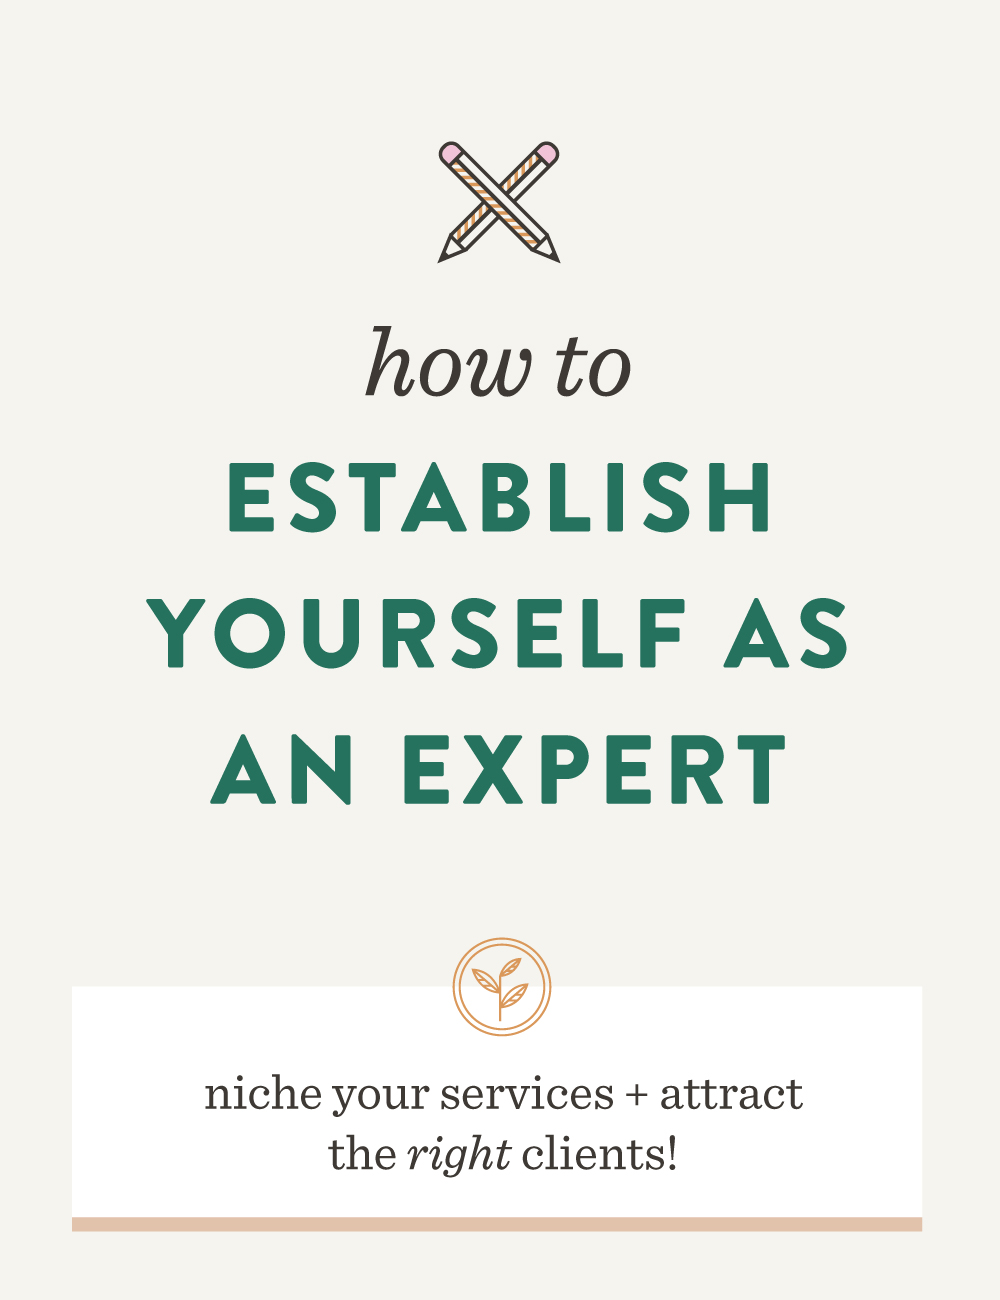 How to Establish Yourself as an Expert | Spruce Rd. #niche #freelance #branding